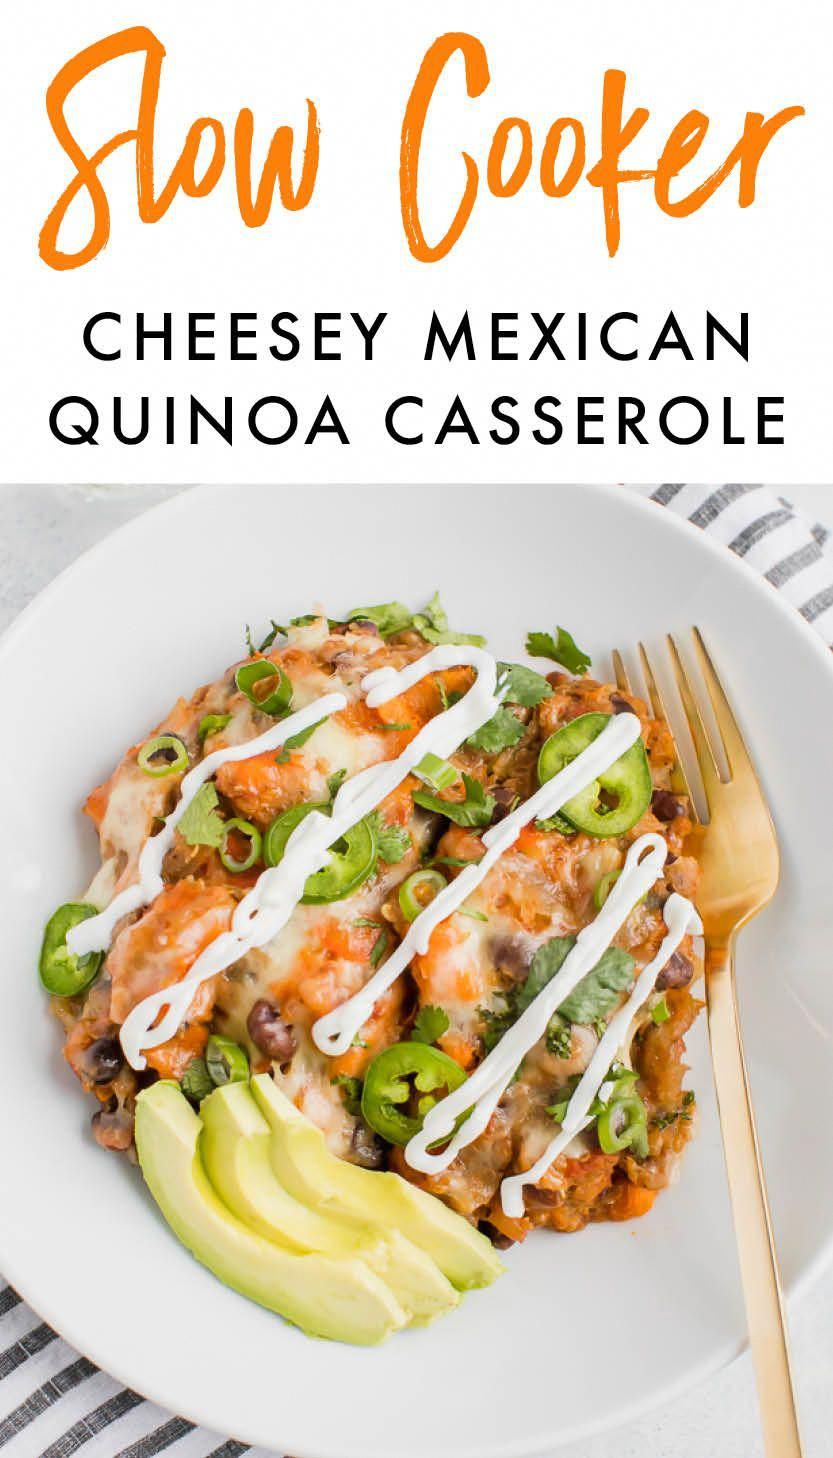 A vegetarian Mexican quinoa casserole made entirely in the slow cooker. Packed with sweet potatoes,